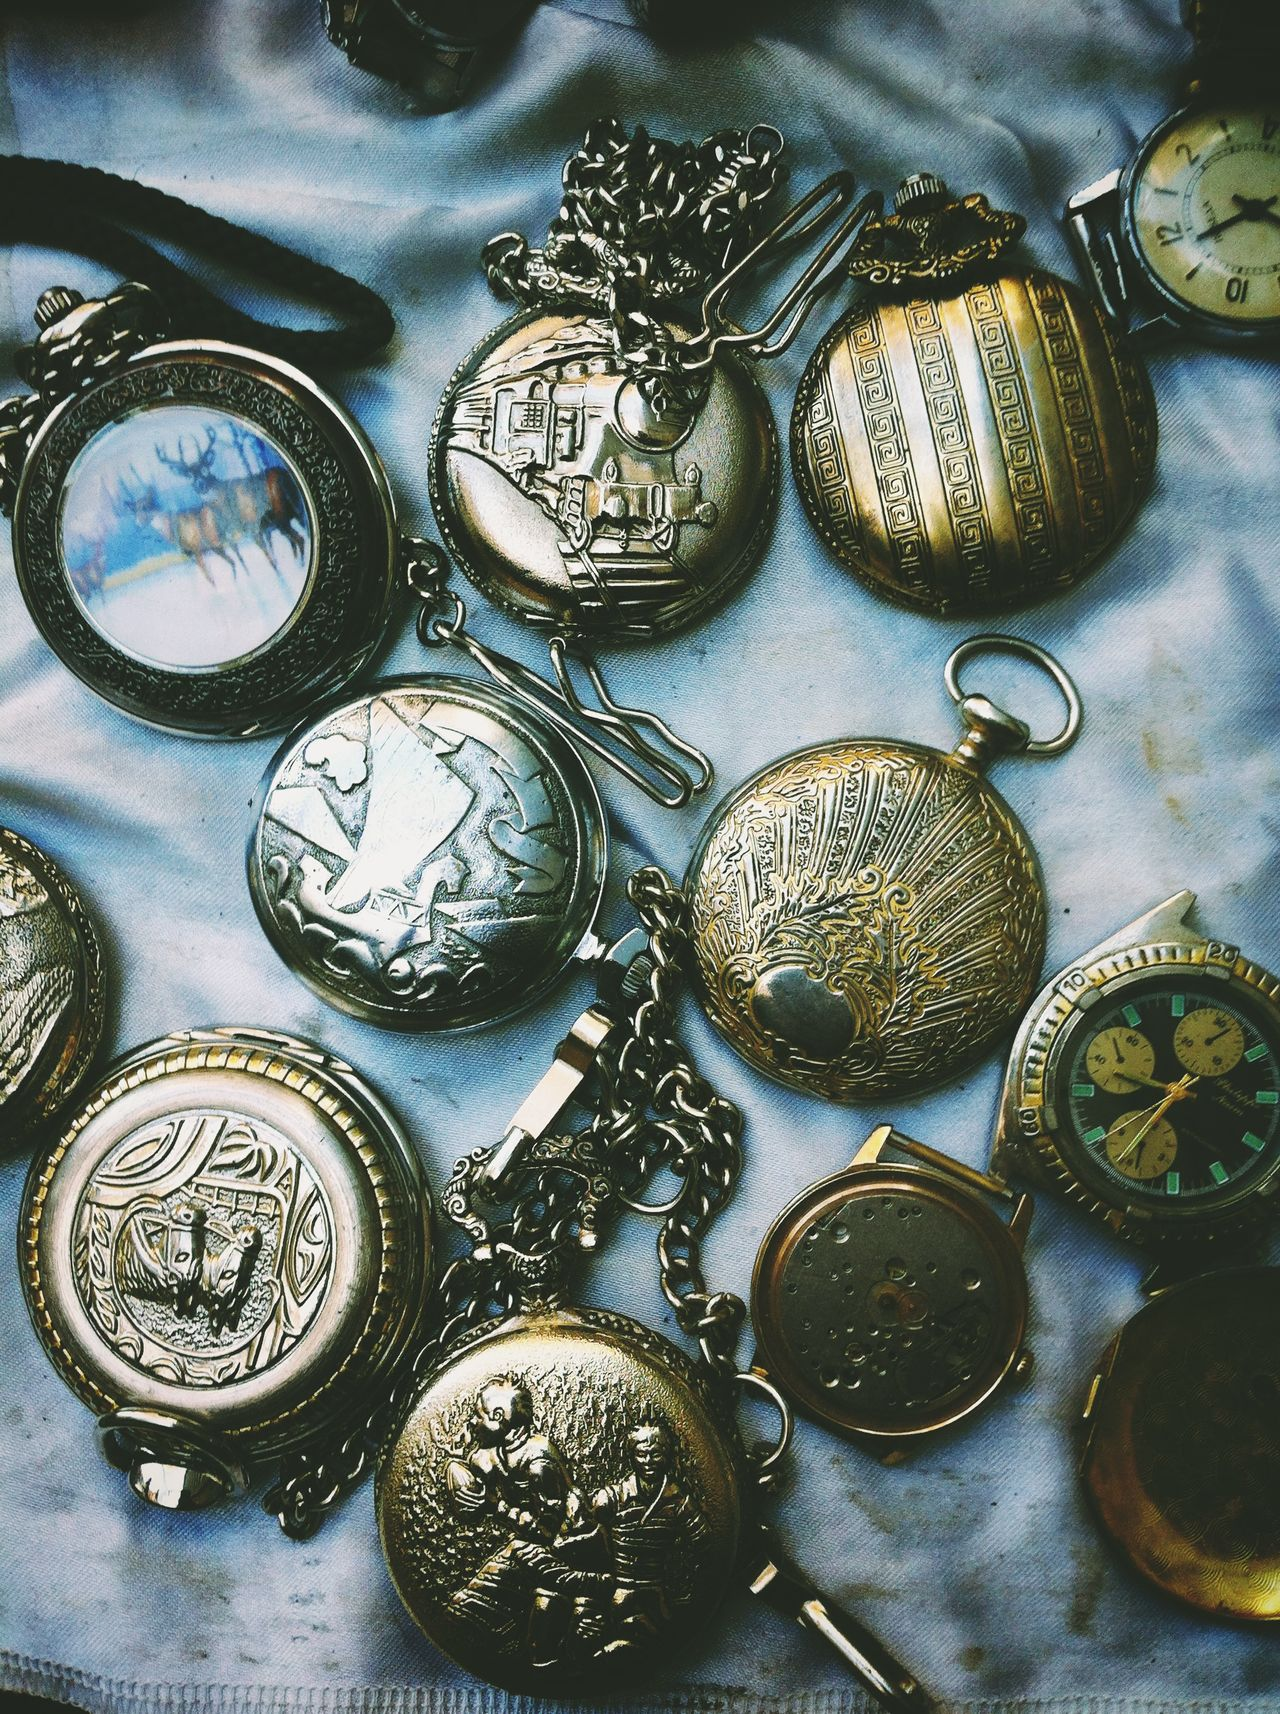 Pocket Watch Watches Old Watches Bazaar Tirana Albania Old Stuff Retro Vintage